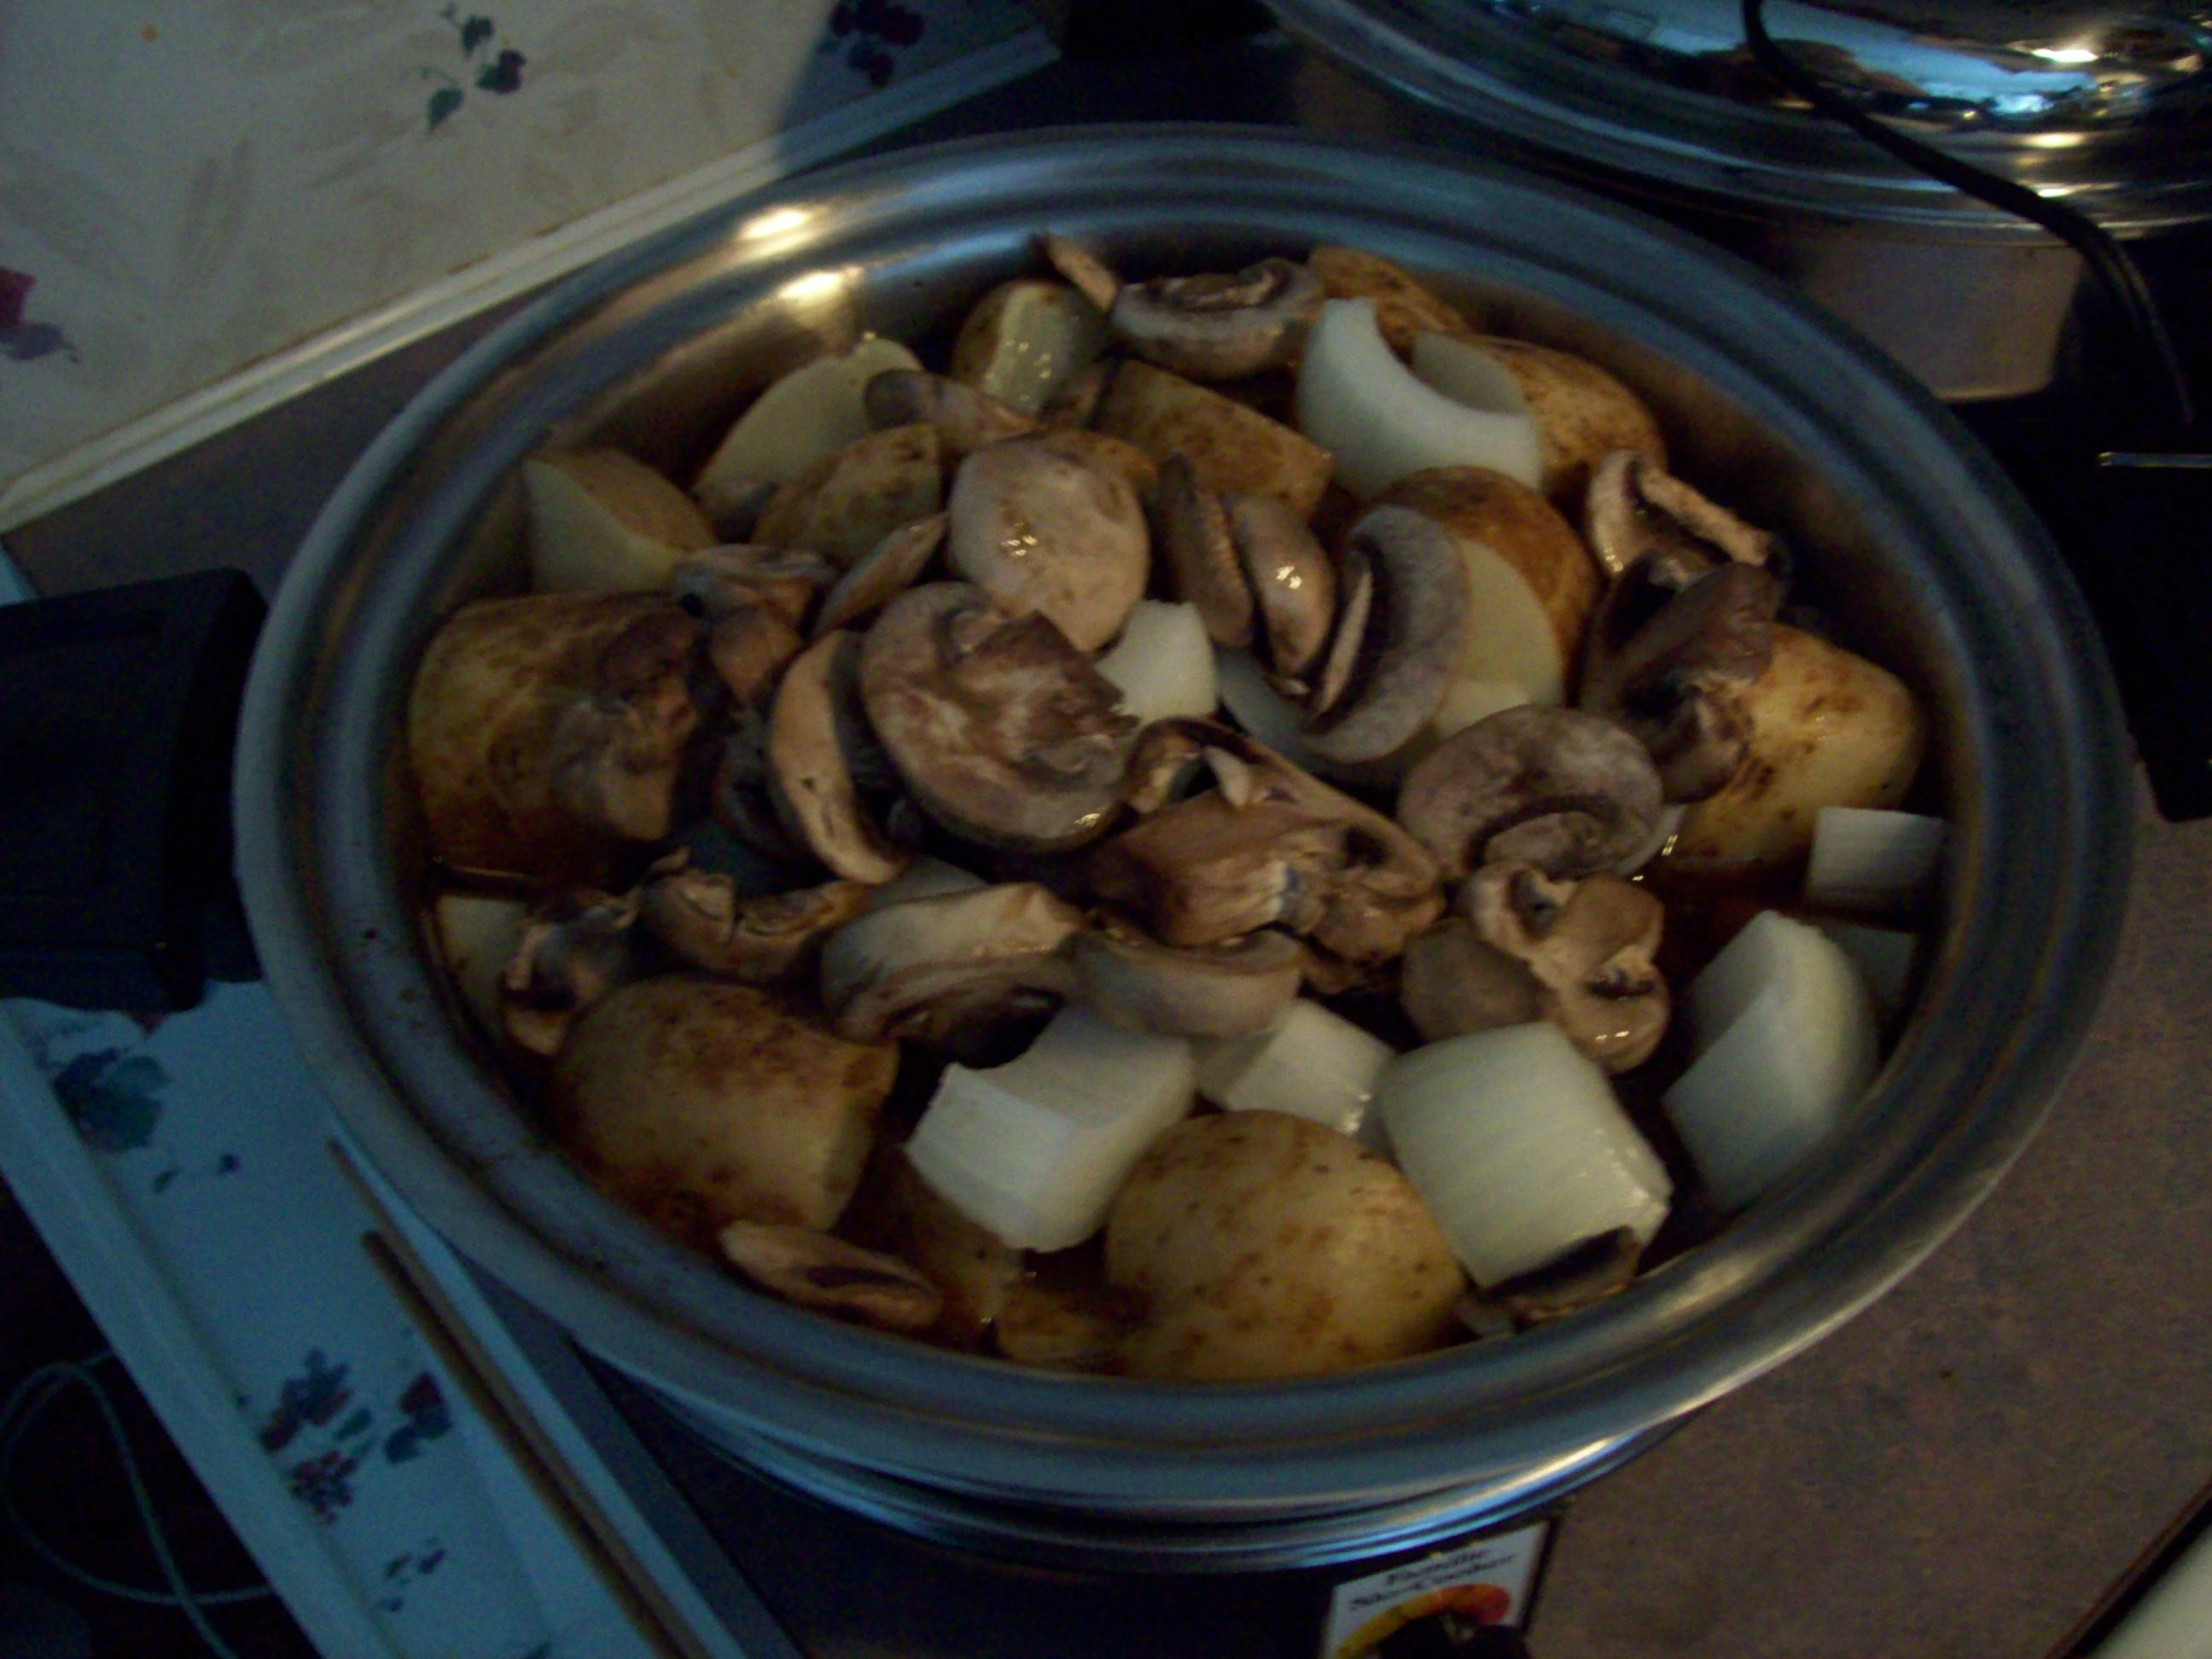 Roast, potatoes, onions, and mushrooms